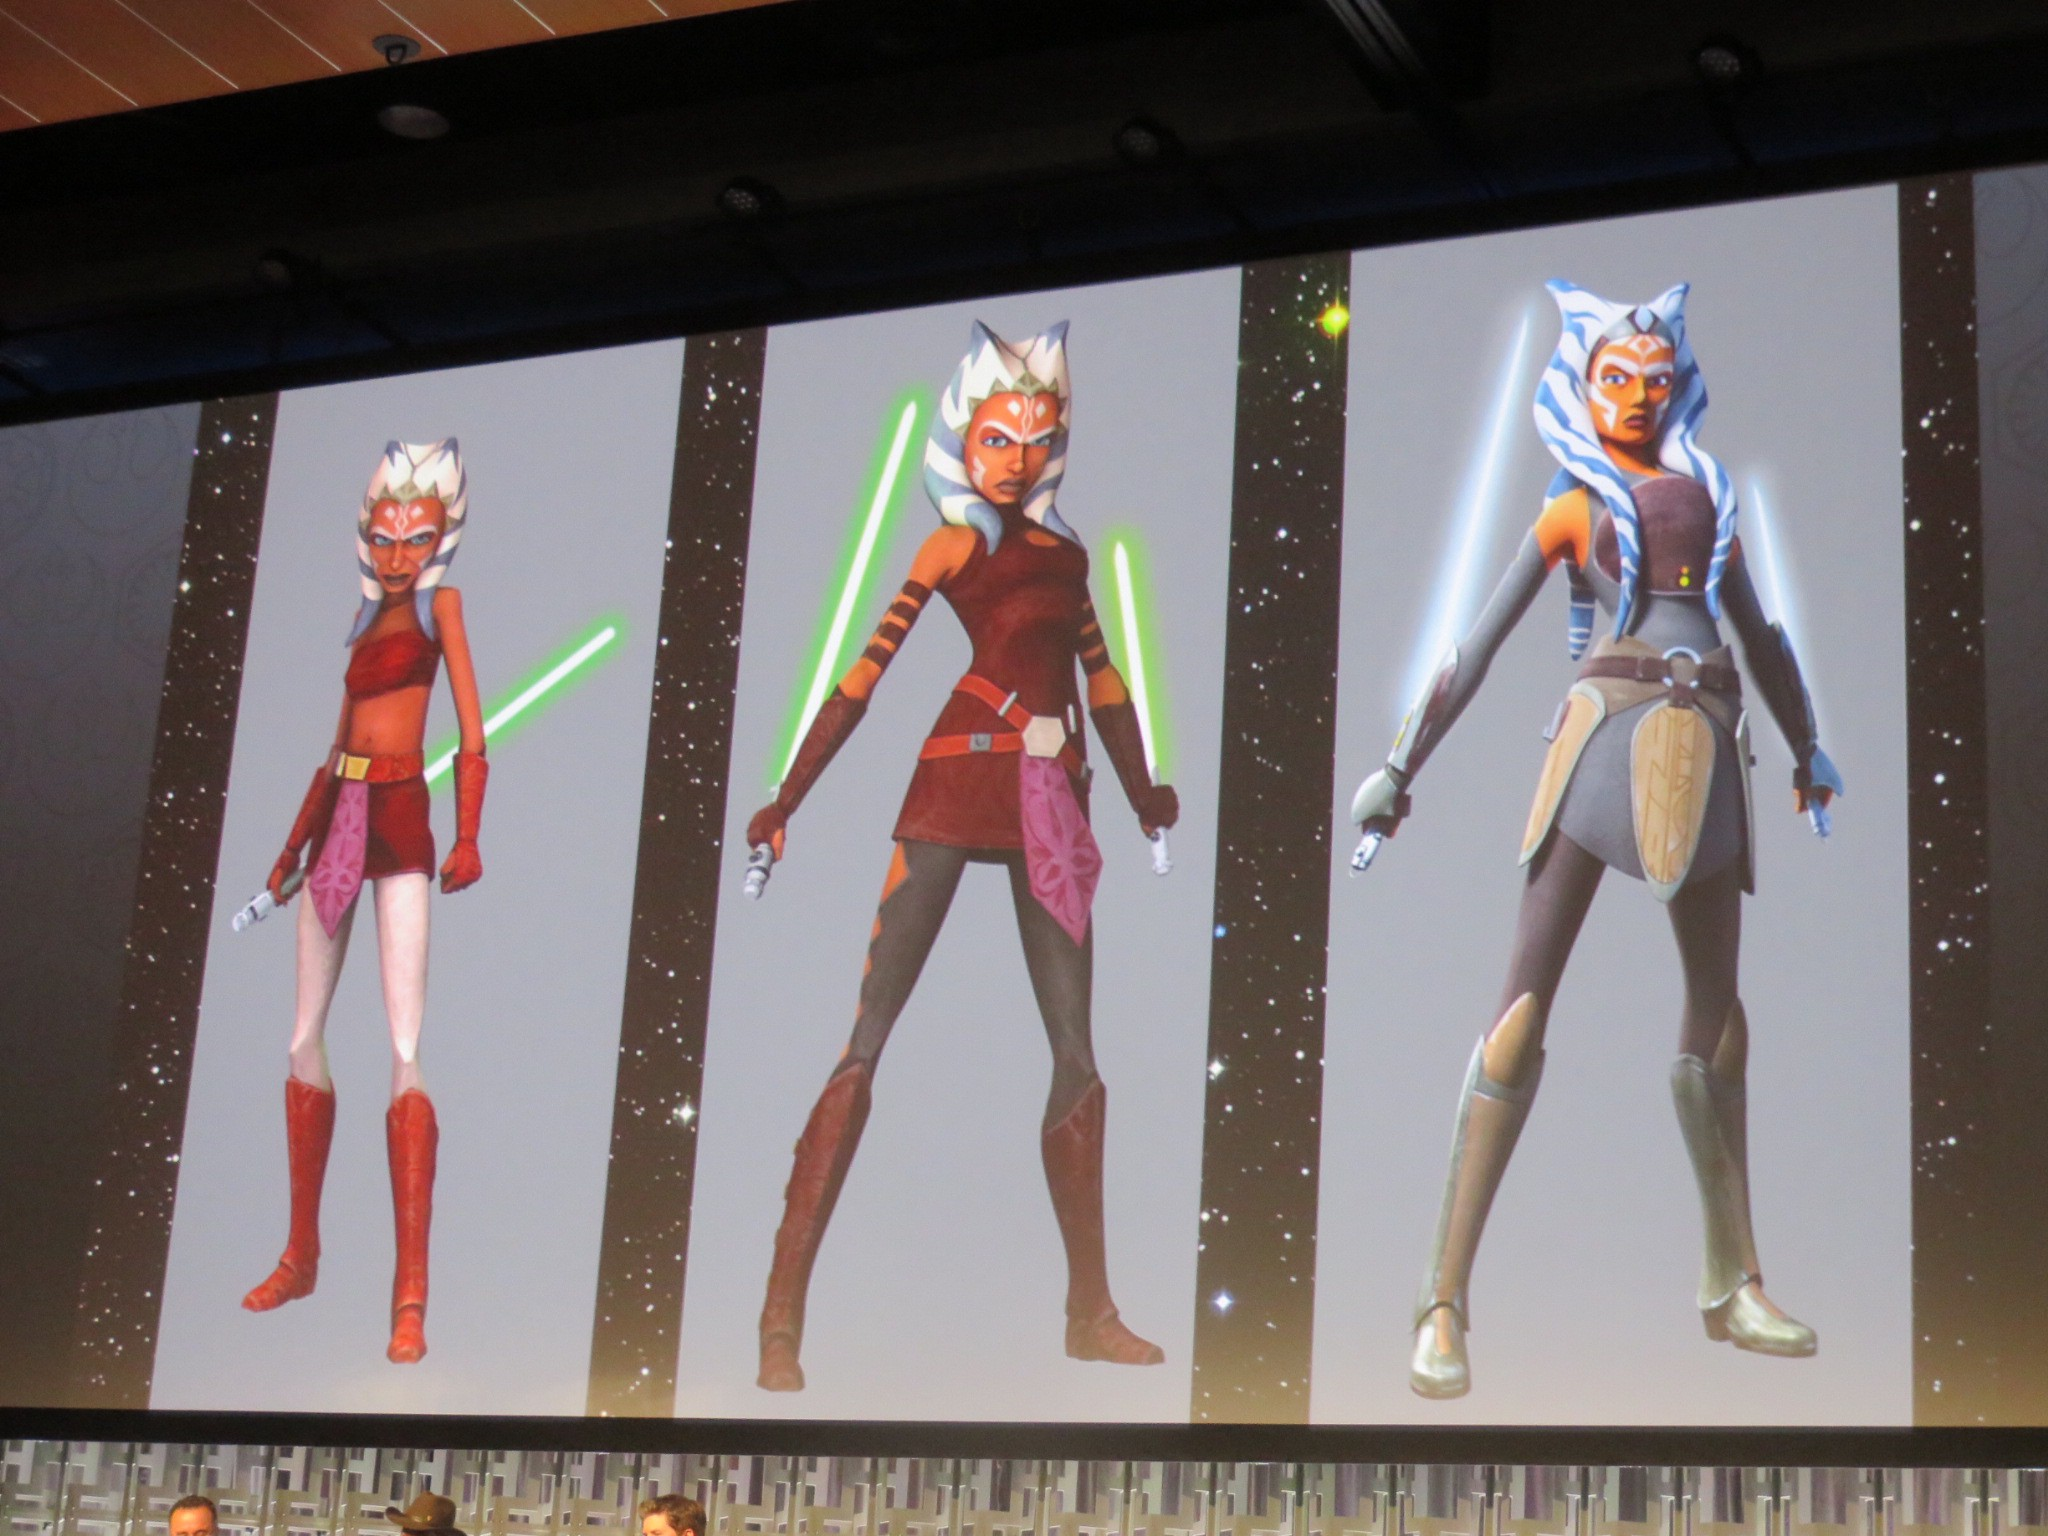 Ahsoka S Design Changes Through The Years By Patty Hammond Medium